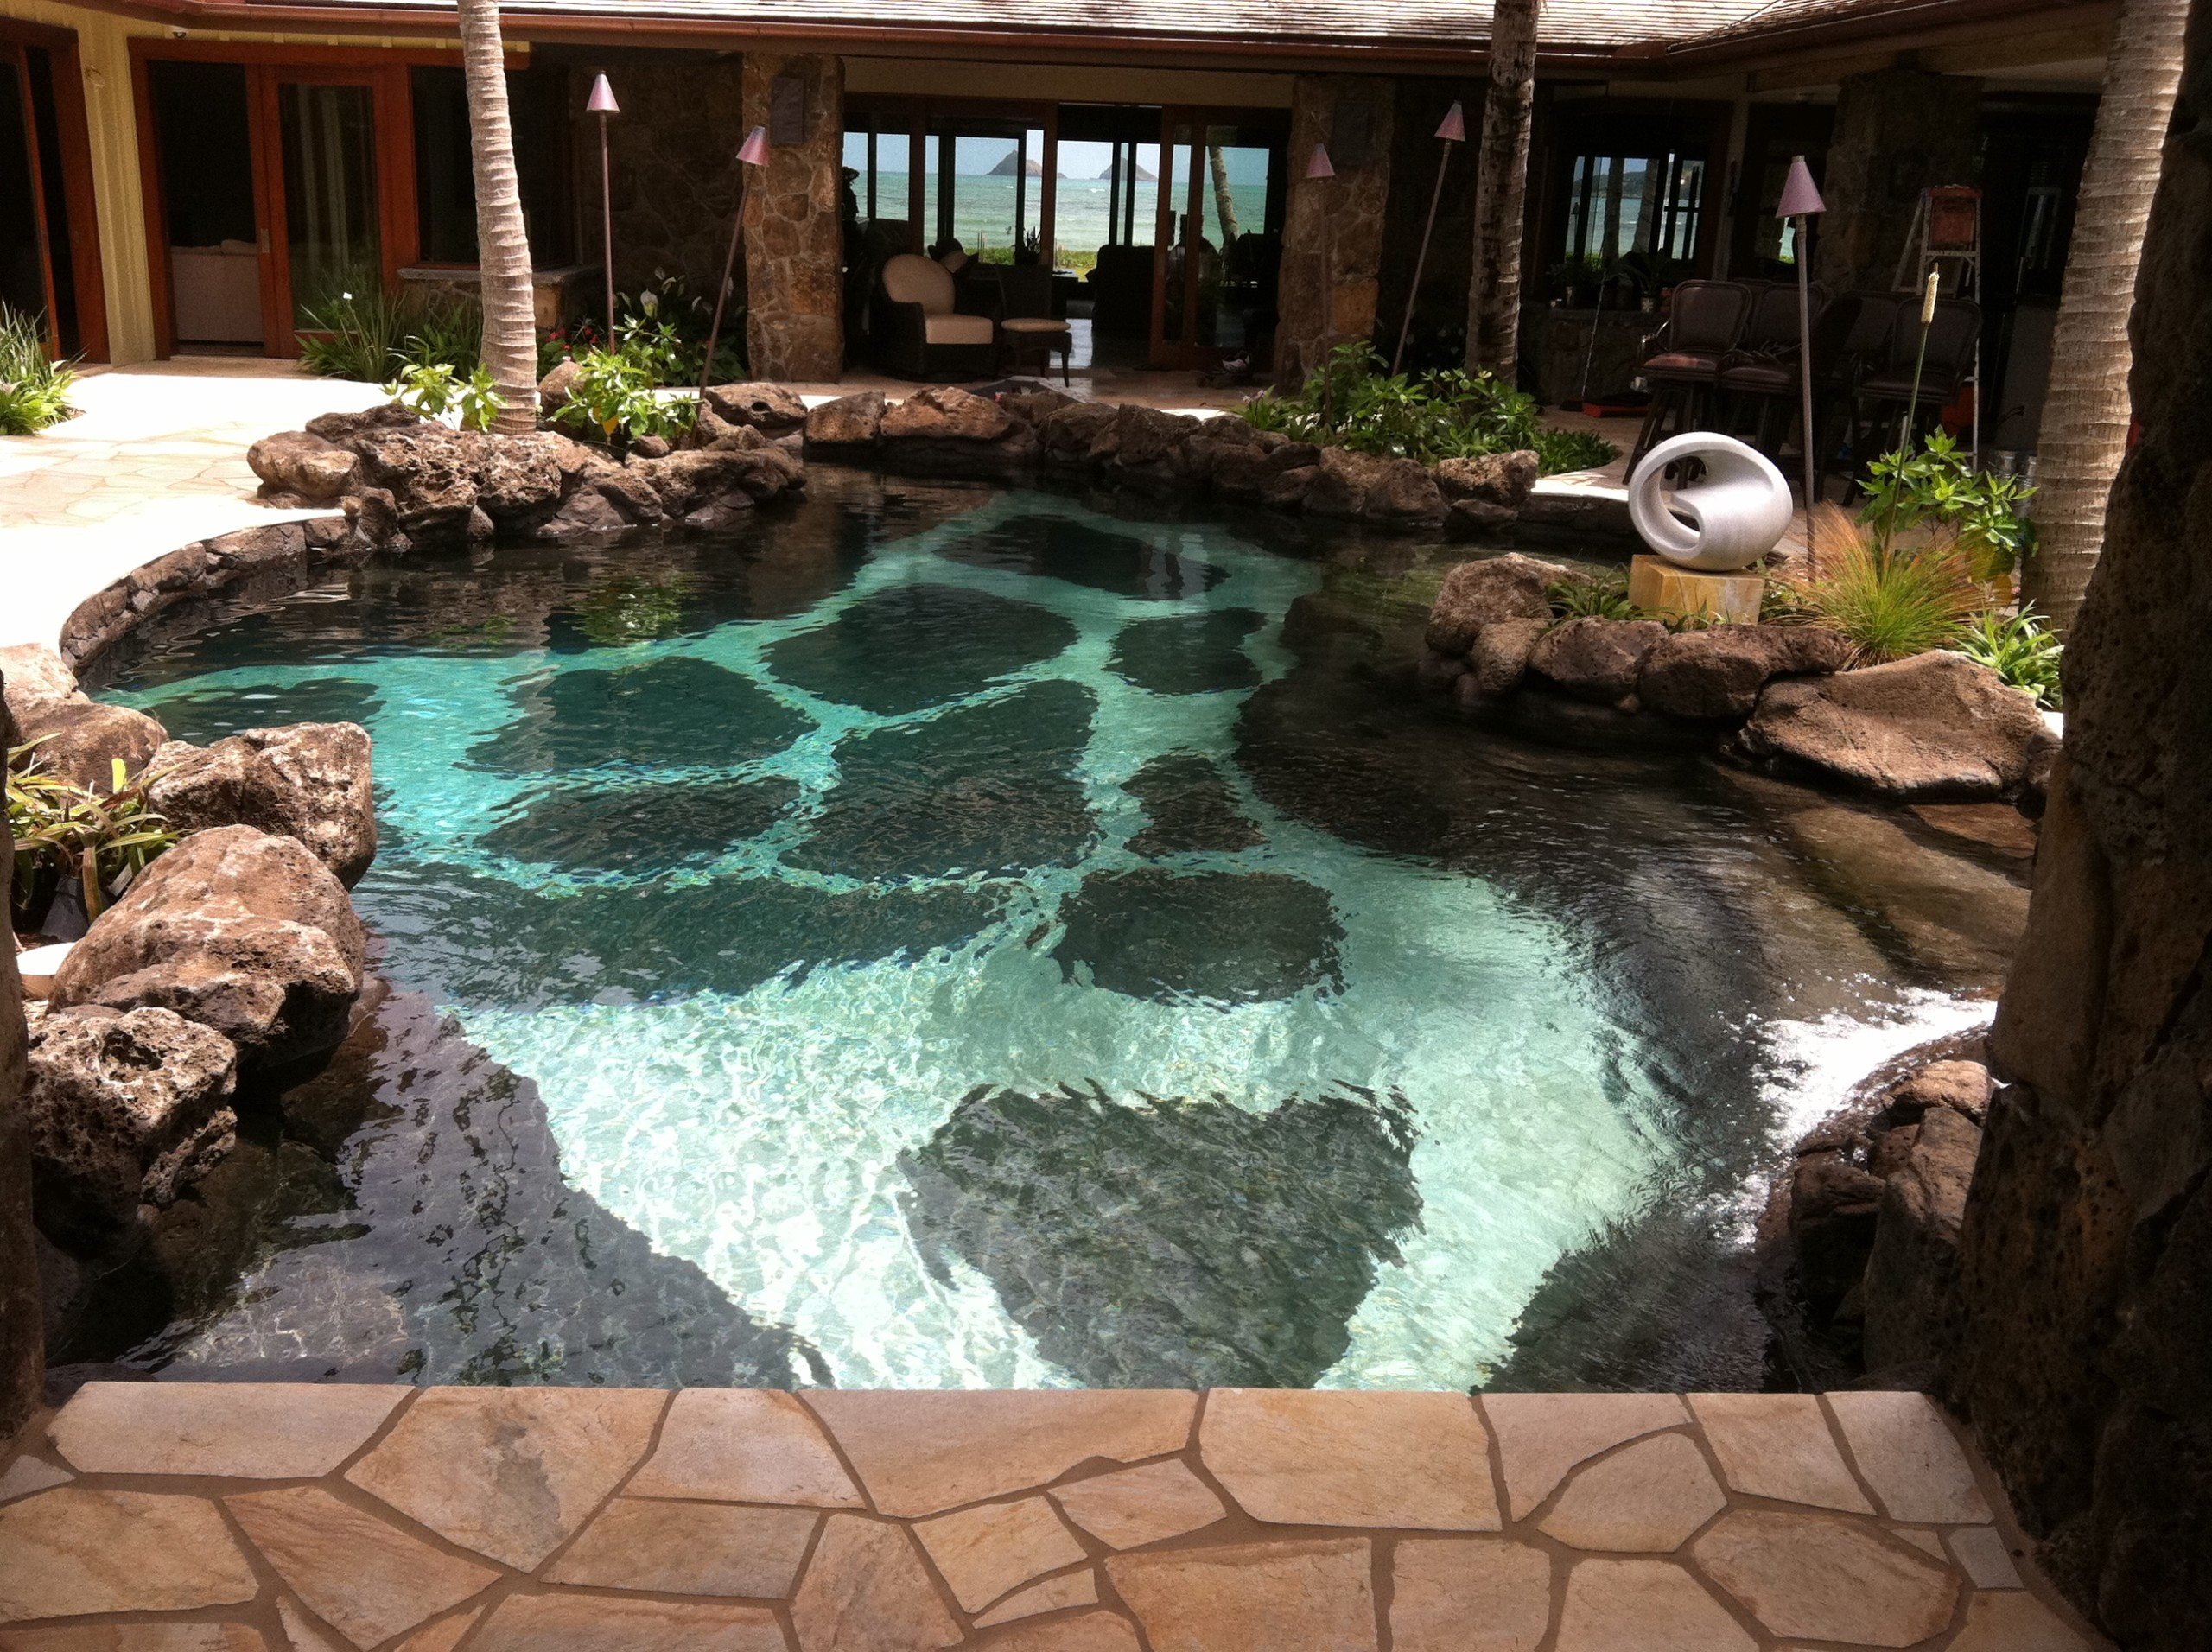 Swan builders international contractors serving hawaii for Local swimming pool companies